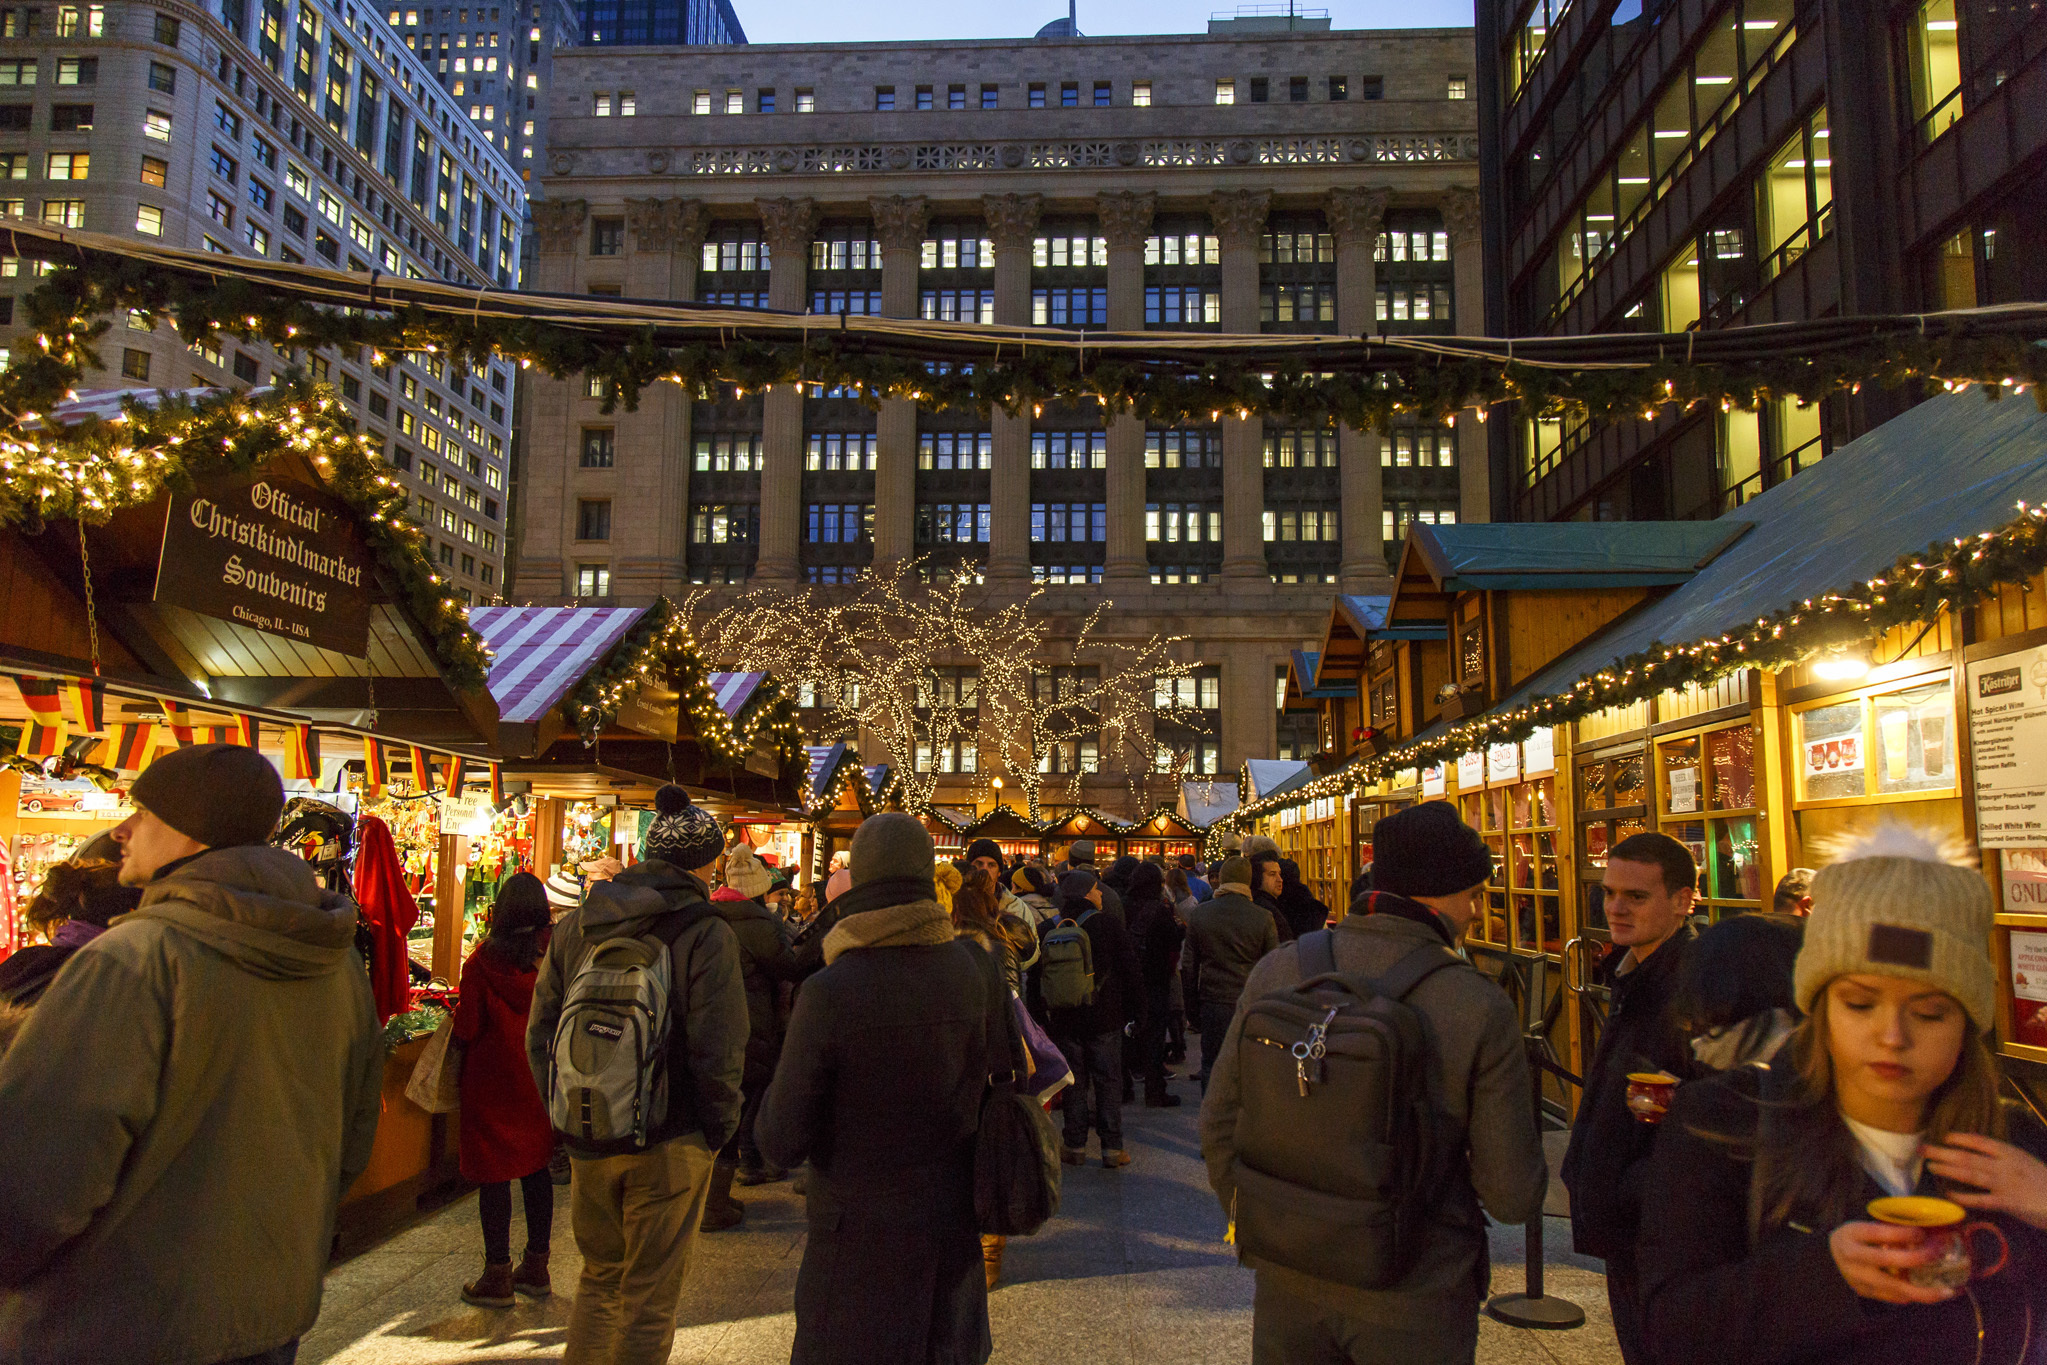 Chicago Christmas 2019 Christmas In Chicago 2019 Guide Including Festive Things to Do